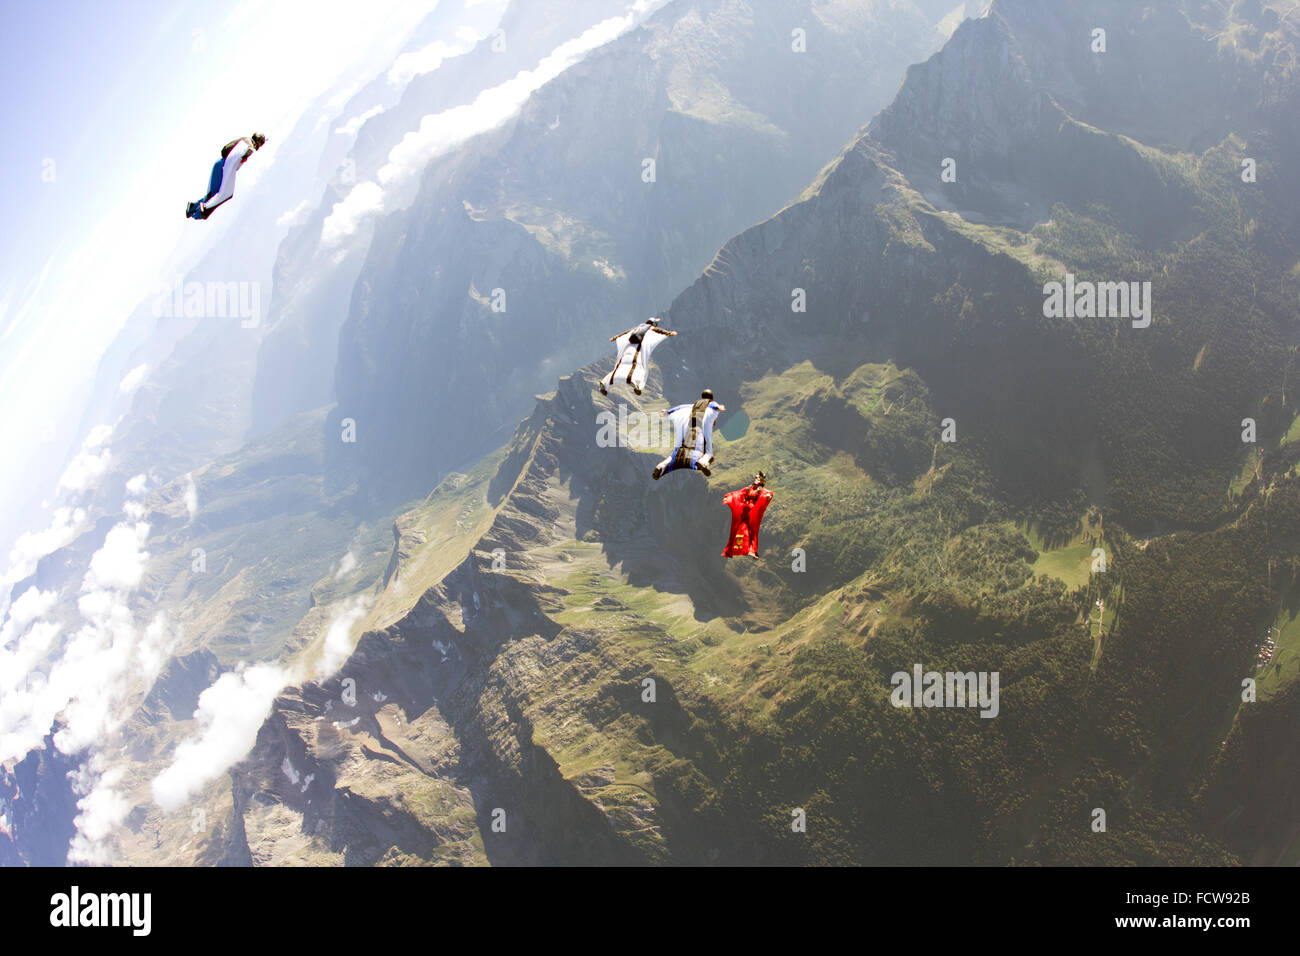 Wingsuit pilots are flying in a group together. The leader in the red suit is flying ahead and guiding them over - Stock Image